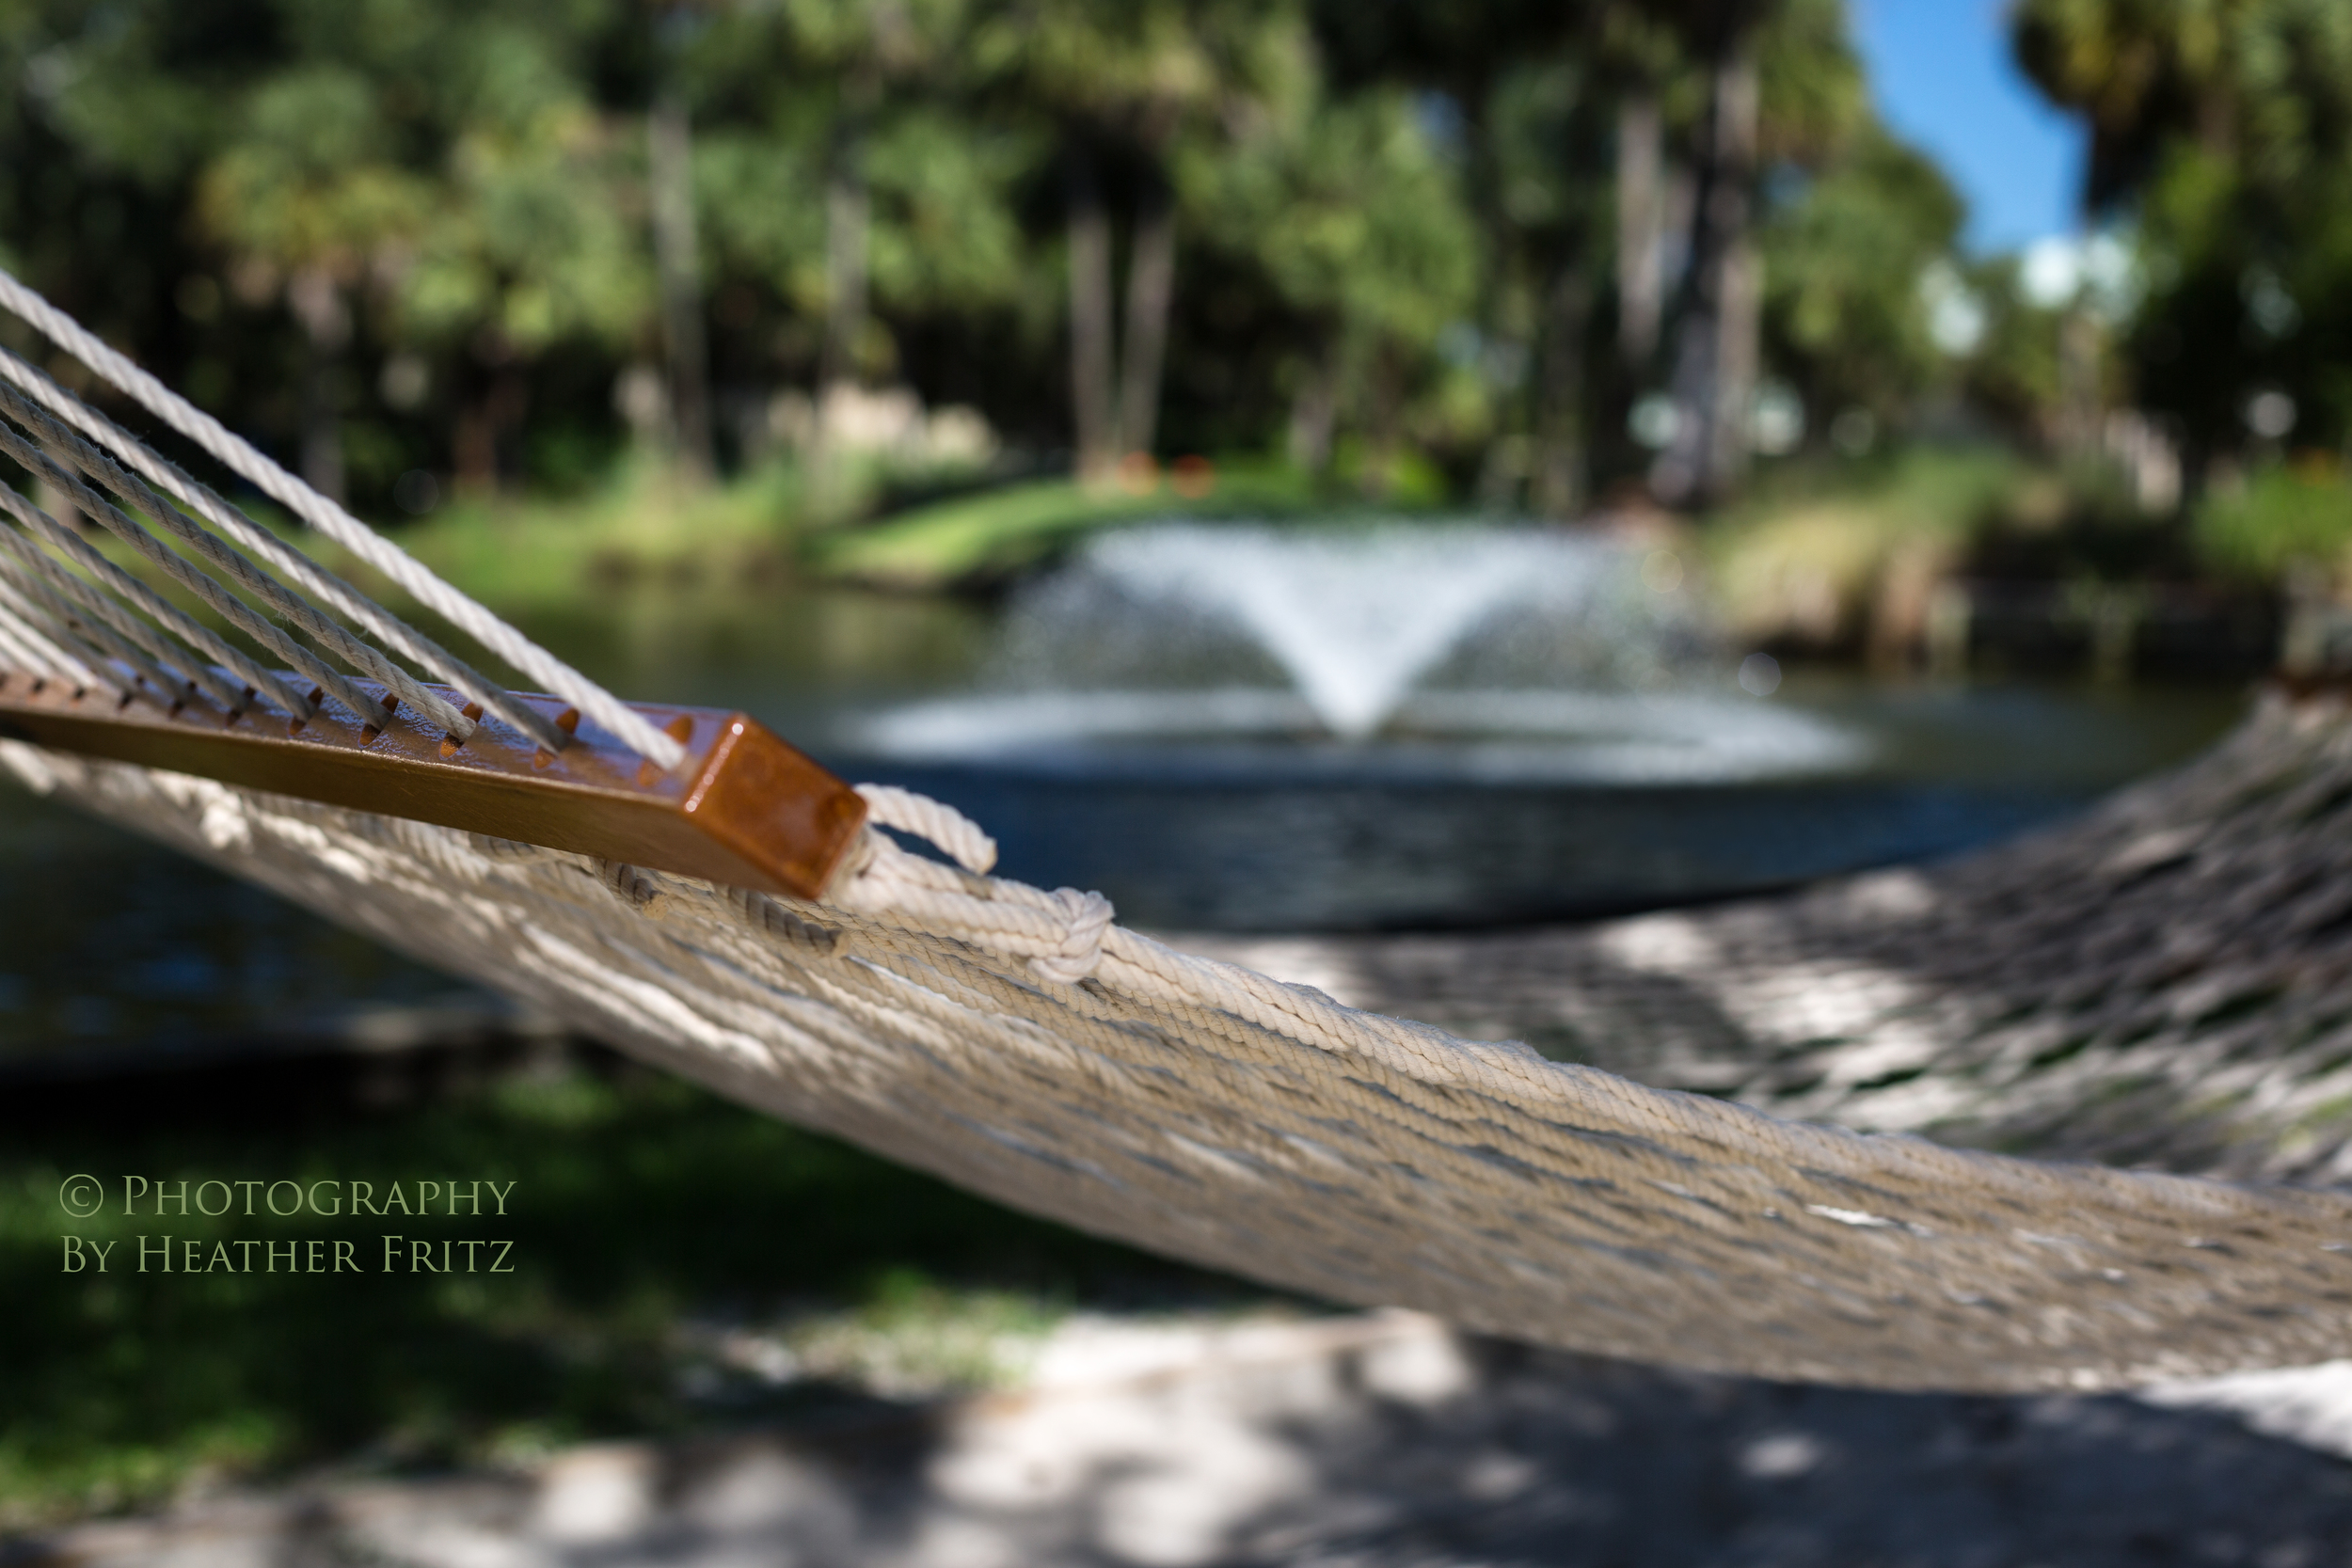 Outdoor Amenity Featuring Relaxation, Hilton Head Island